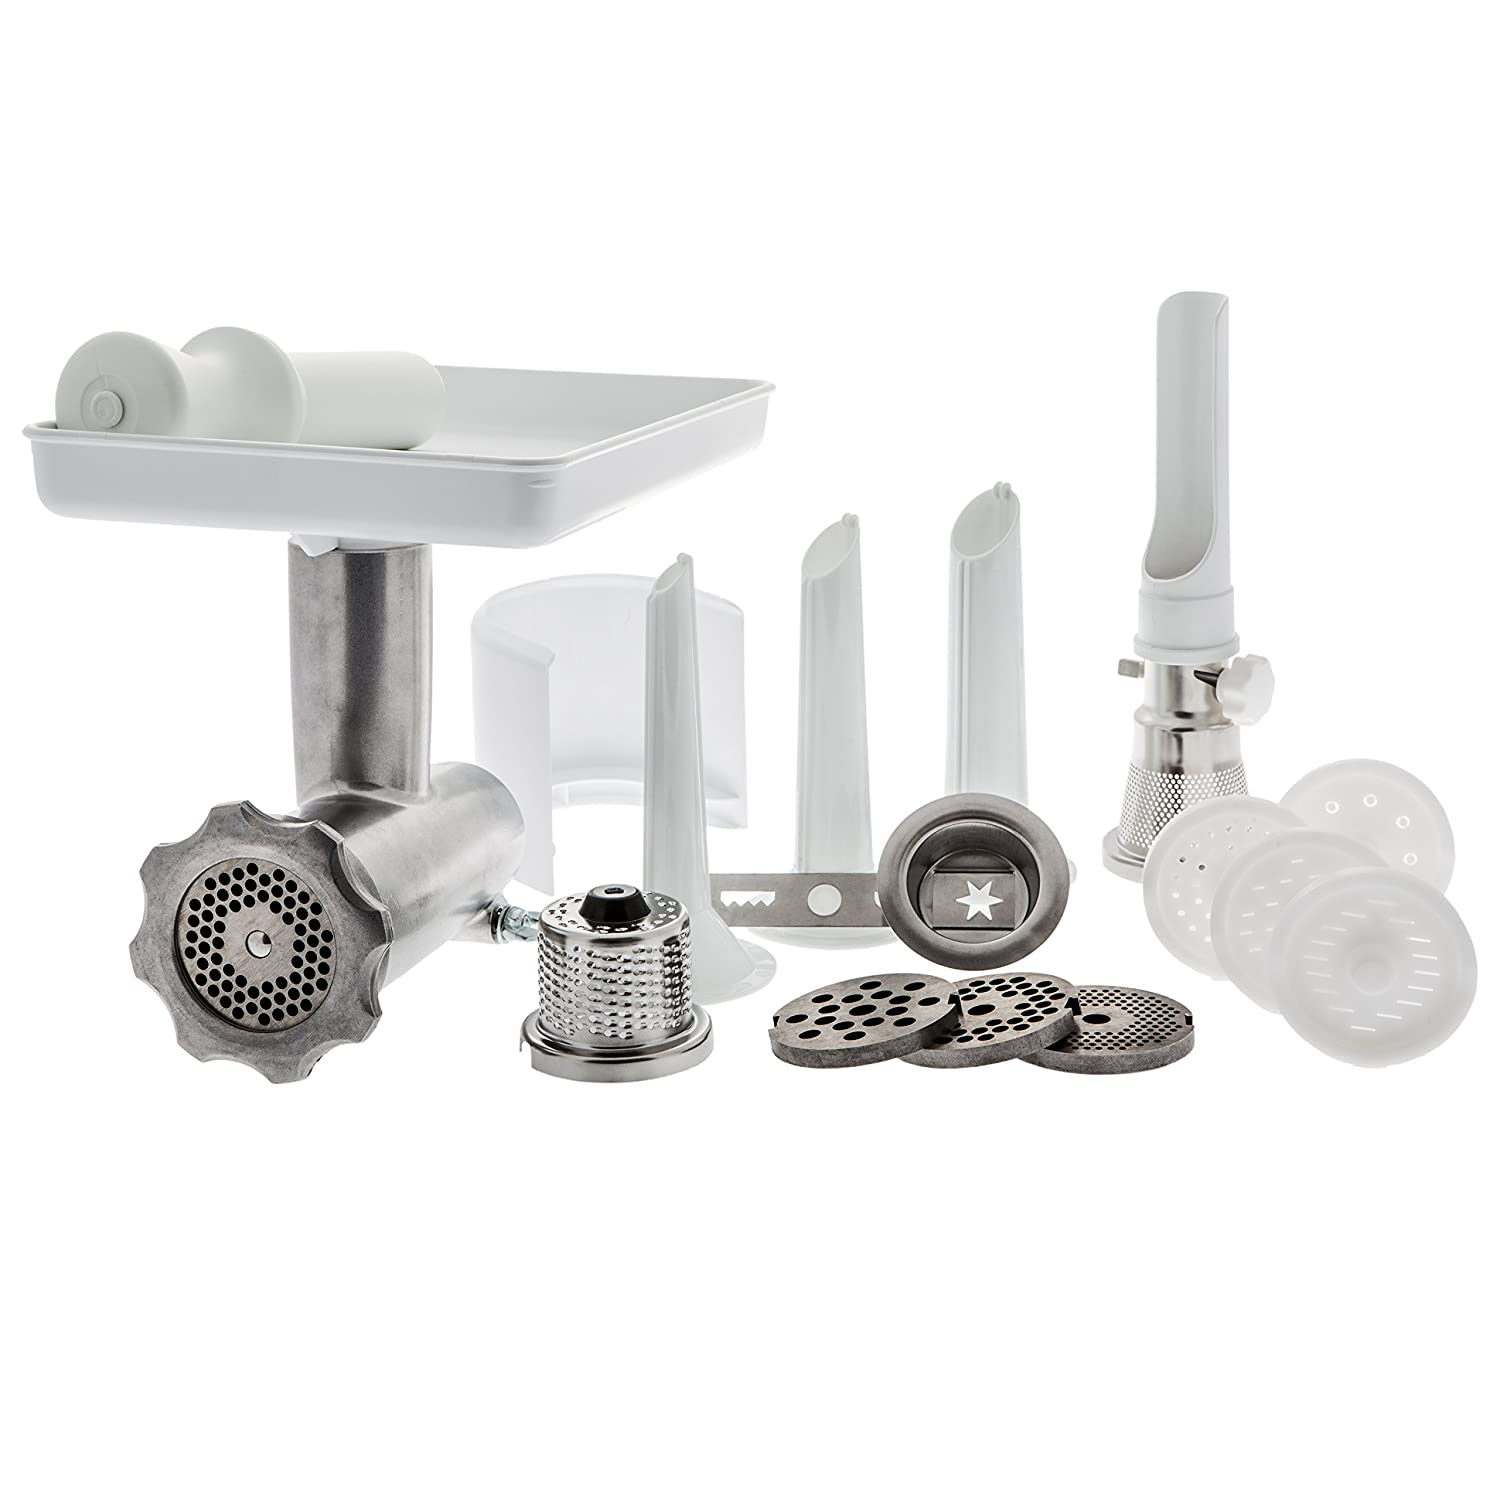 Ankarsrum Original White Complete Meat Grinder Attachment Set AKM6220-1401